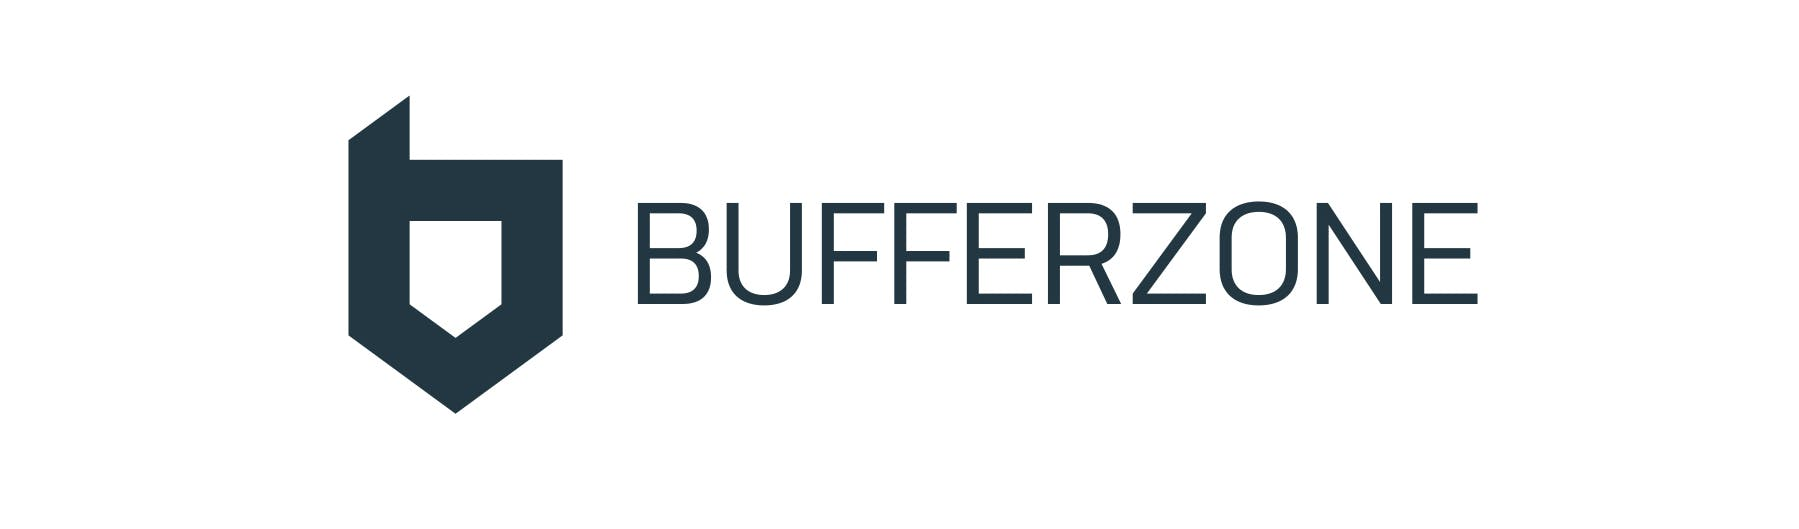 BUFFERZONE